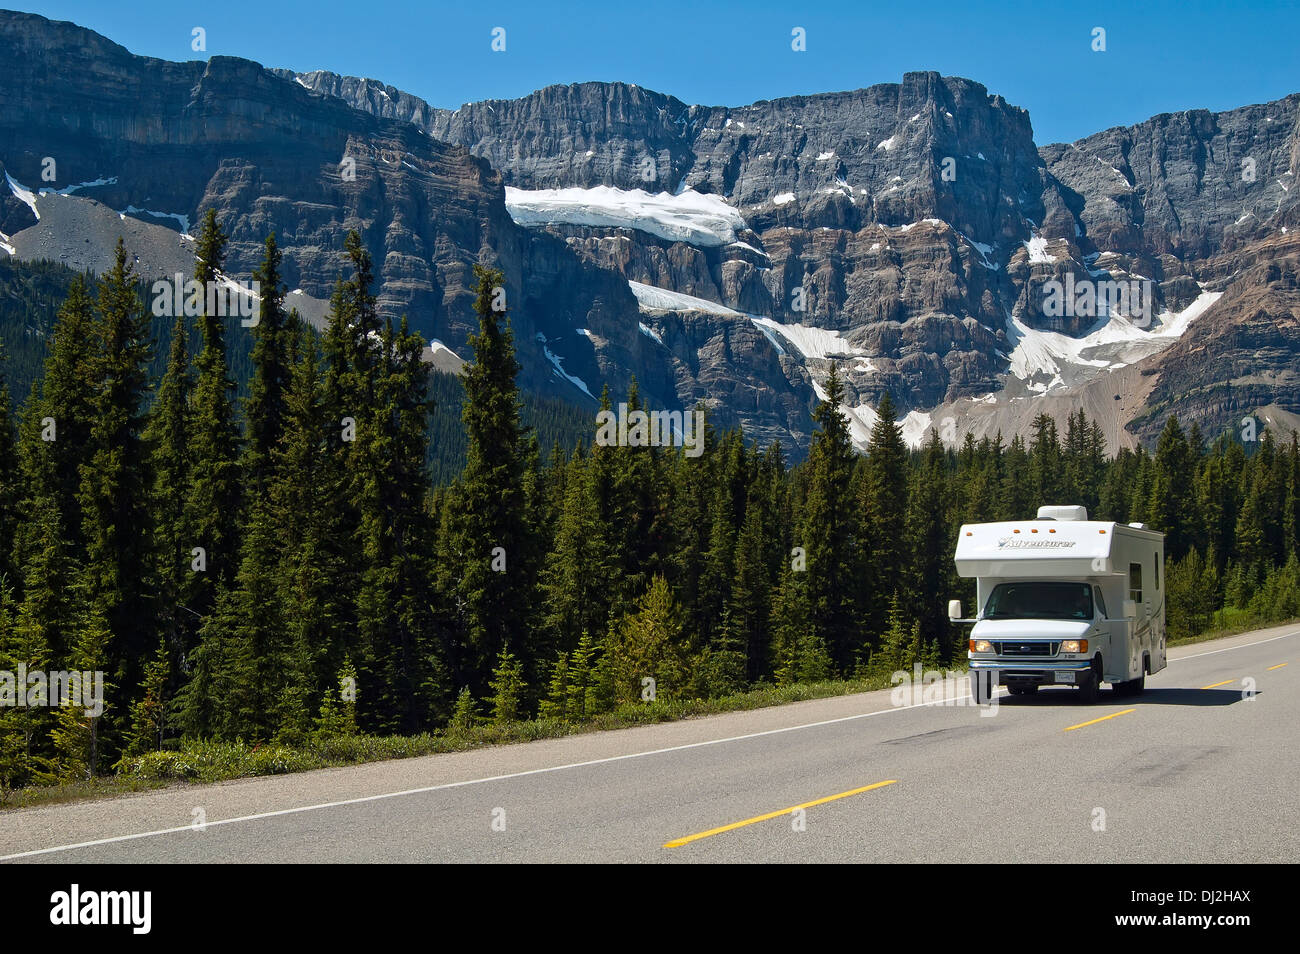 Touring The rockies in Alberta, Canada - Stock Image